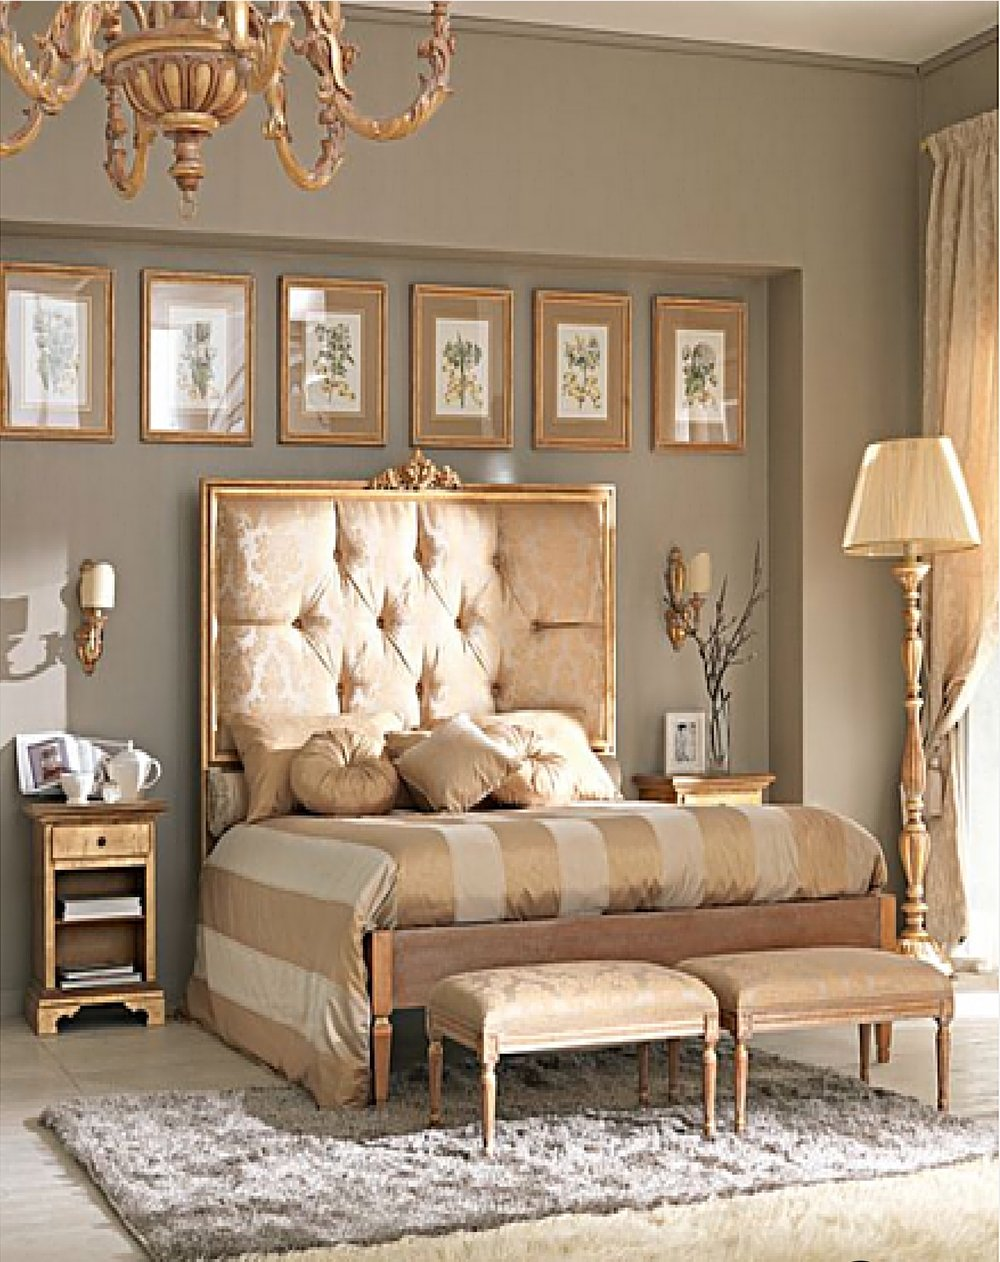 KHB Interiors New Orleans Interior Design Gold Spray Painted Items in Bedroom.jpg